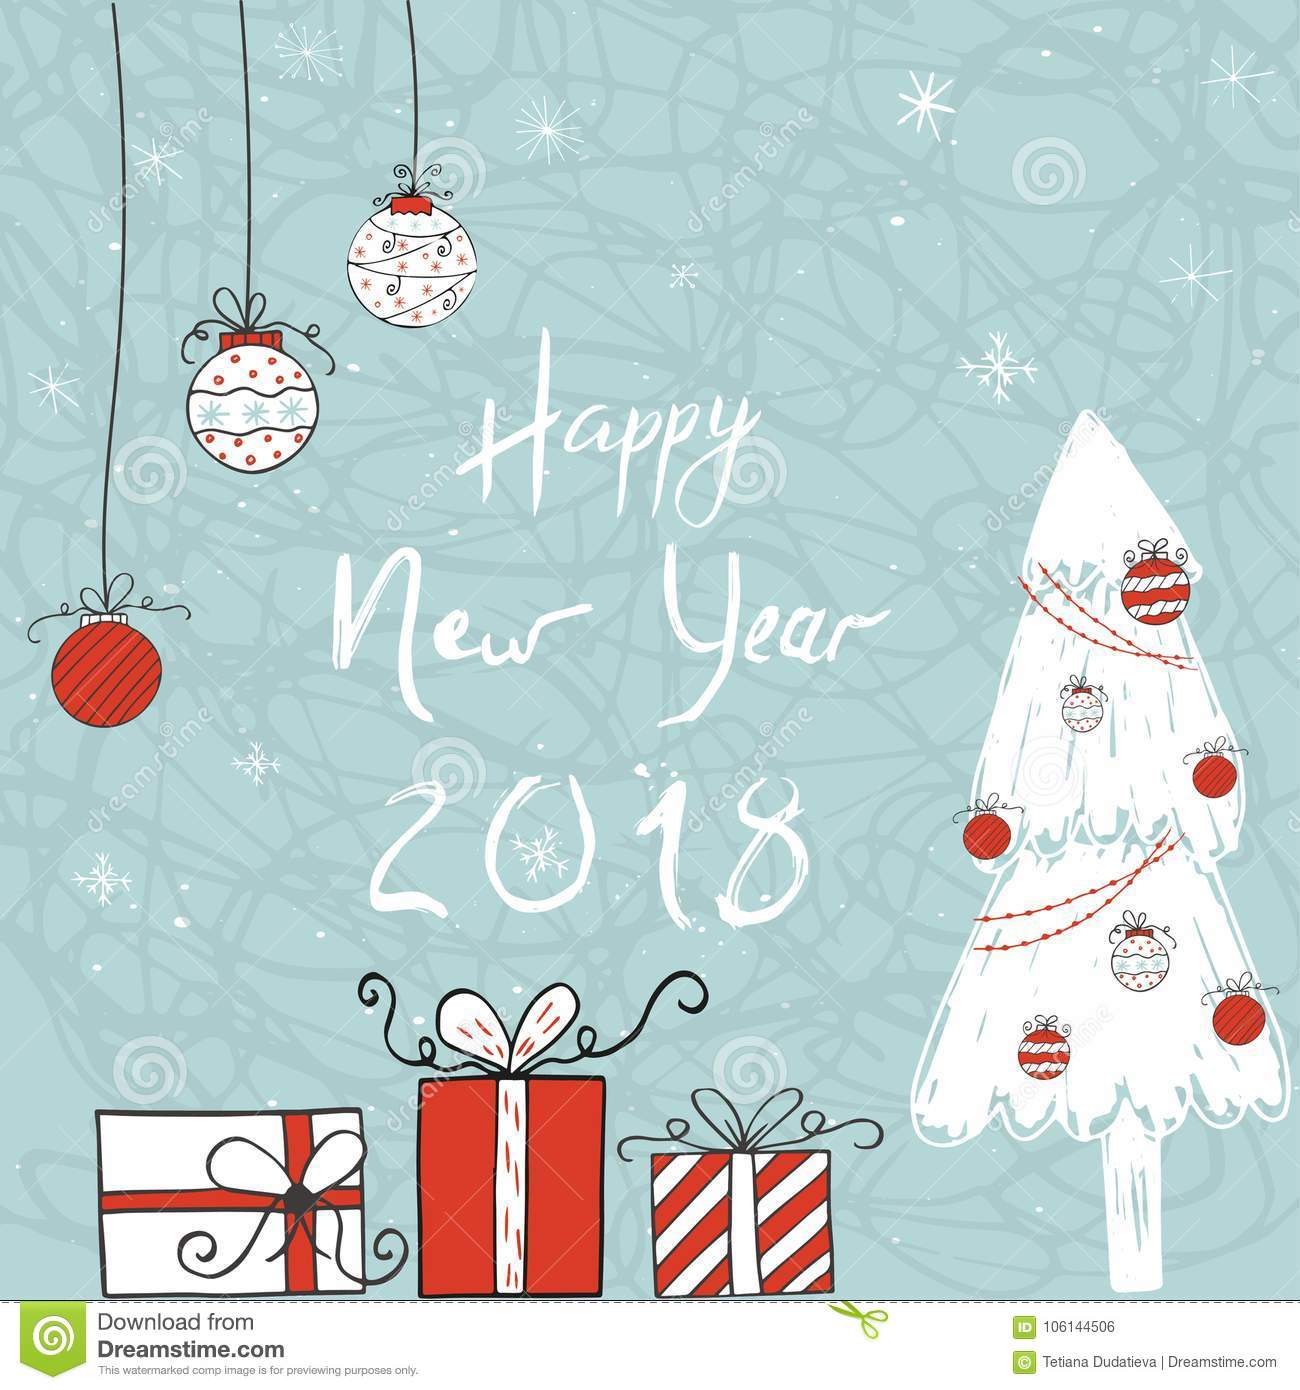 Christmas Wishes For Holiday Greeting Cards Invitations Banne